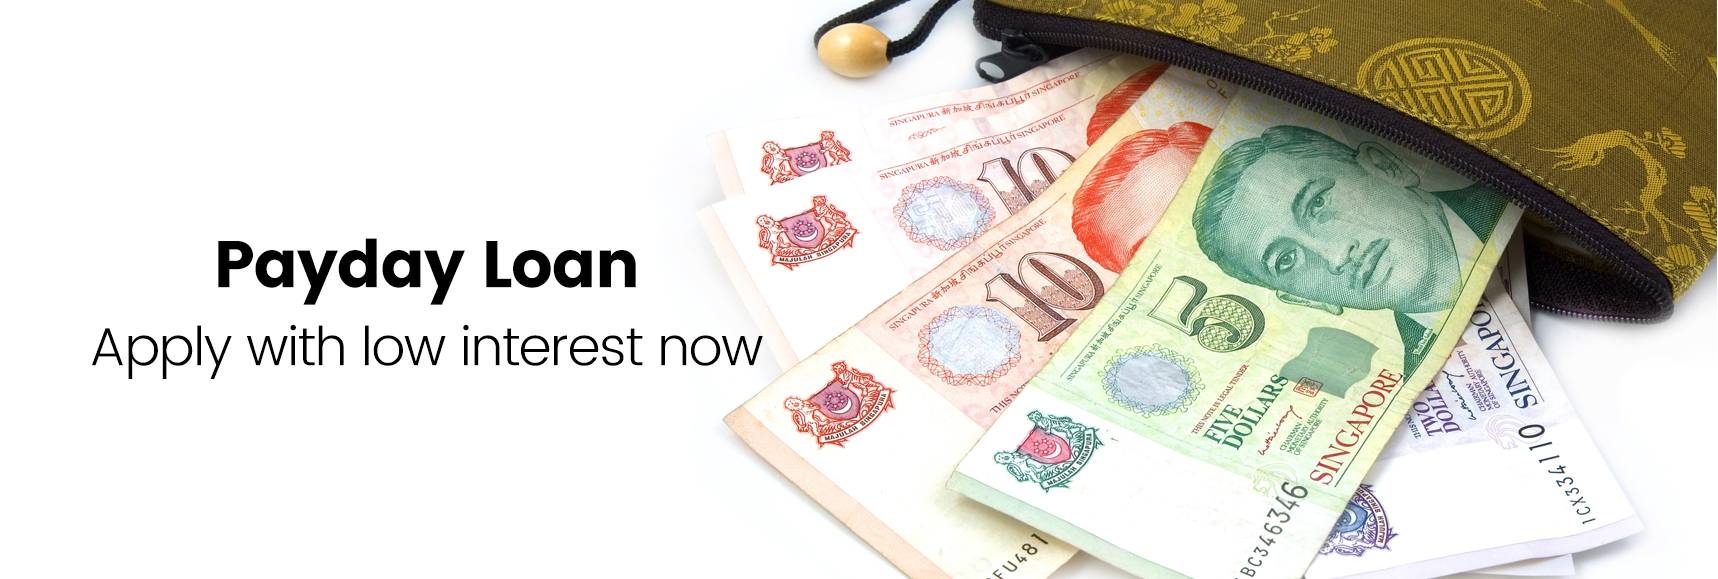 Online Payday Loan in Singapore | Direct Lenders Payday Loans Singapore